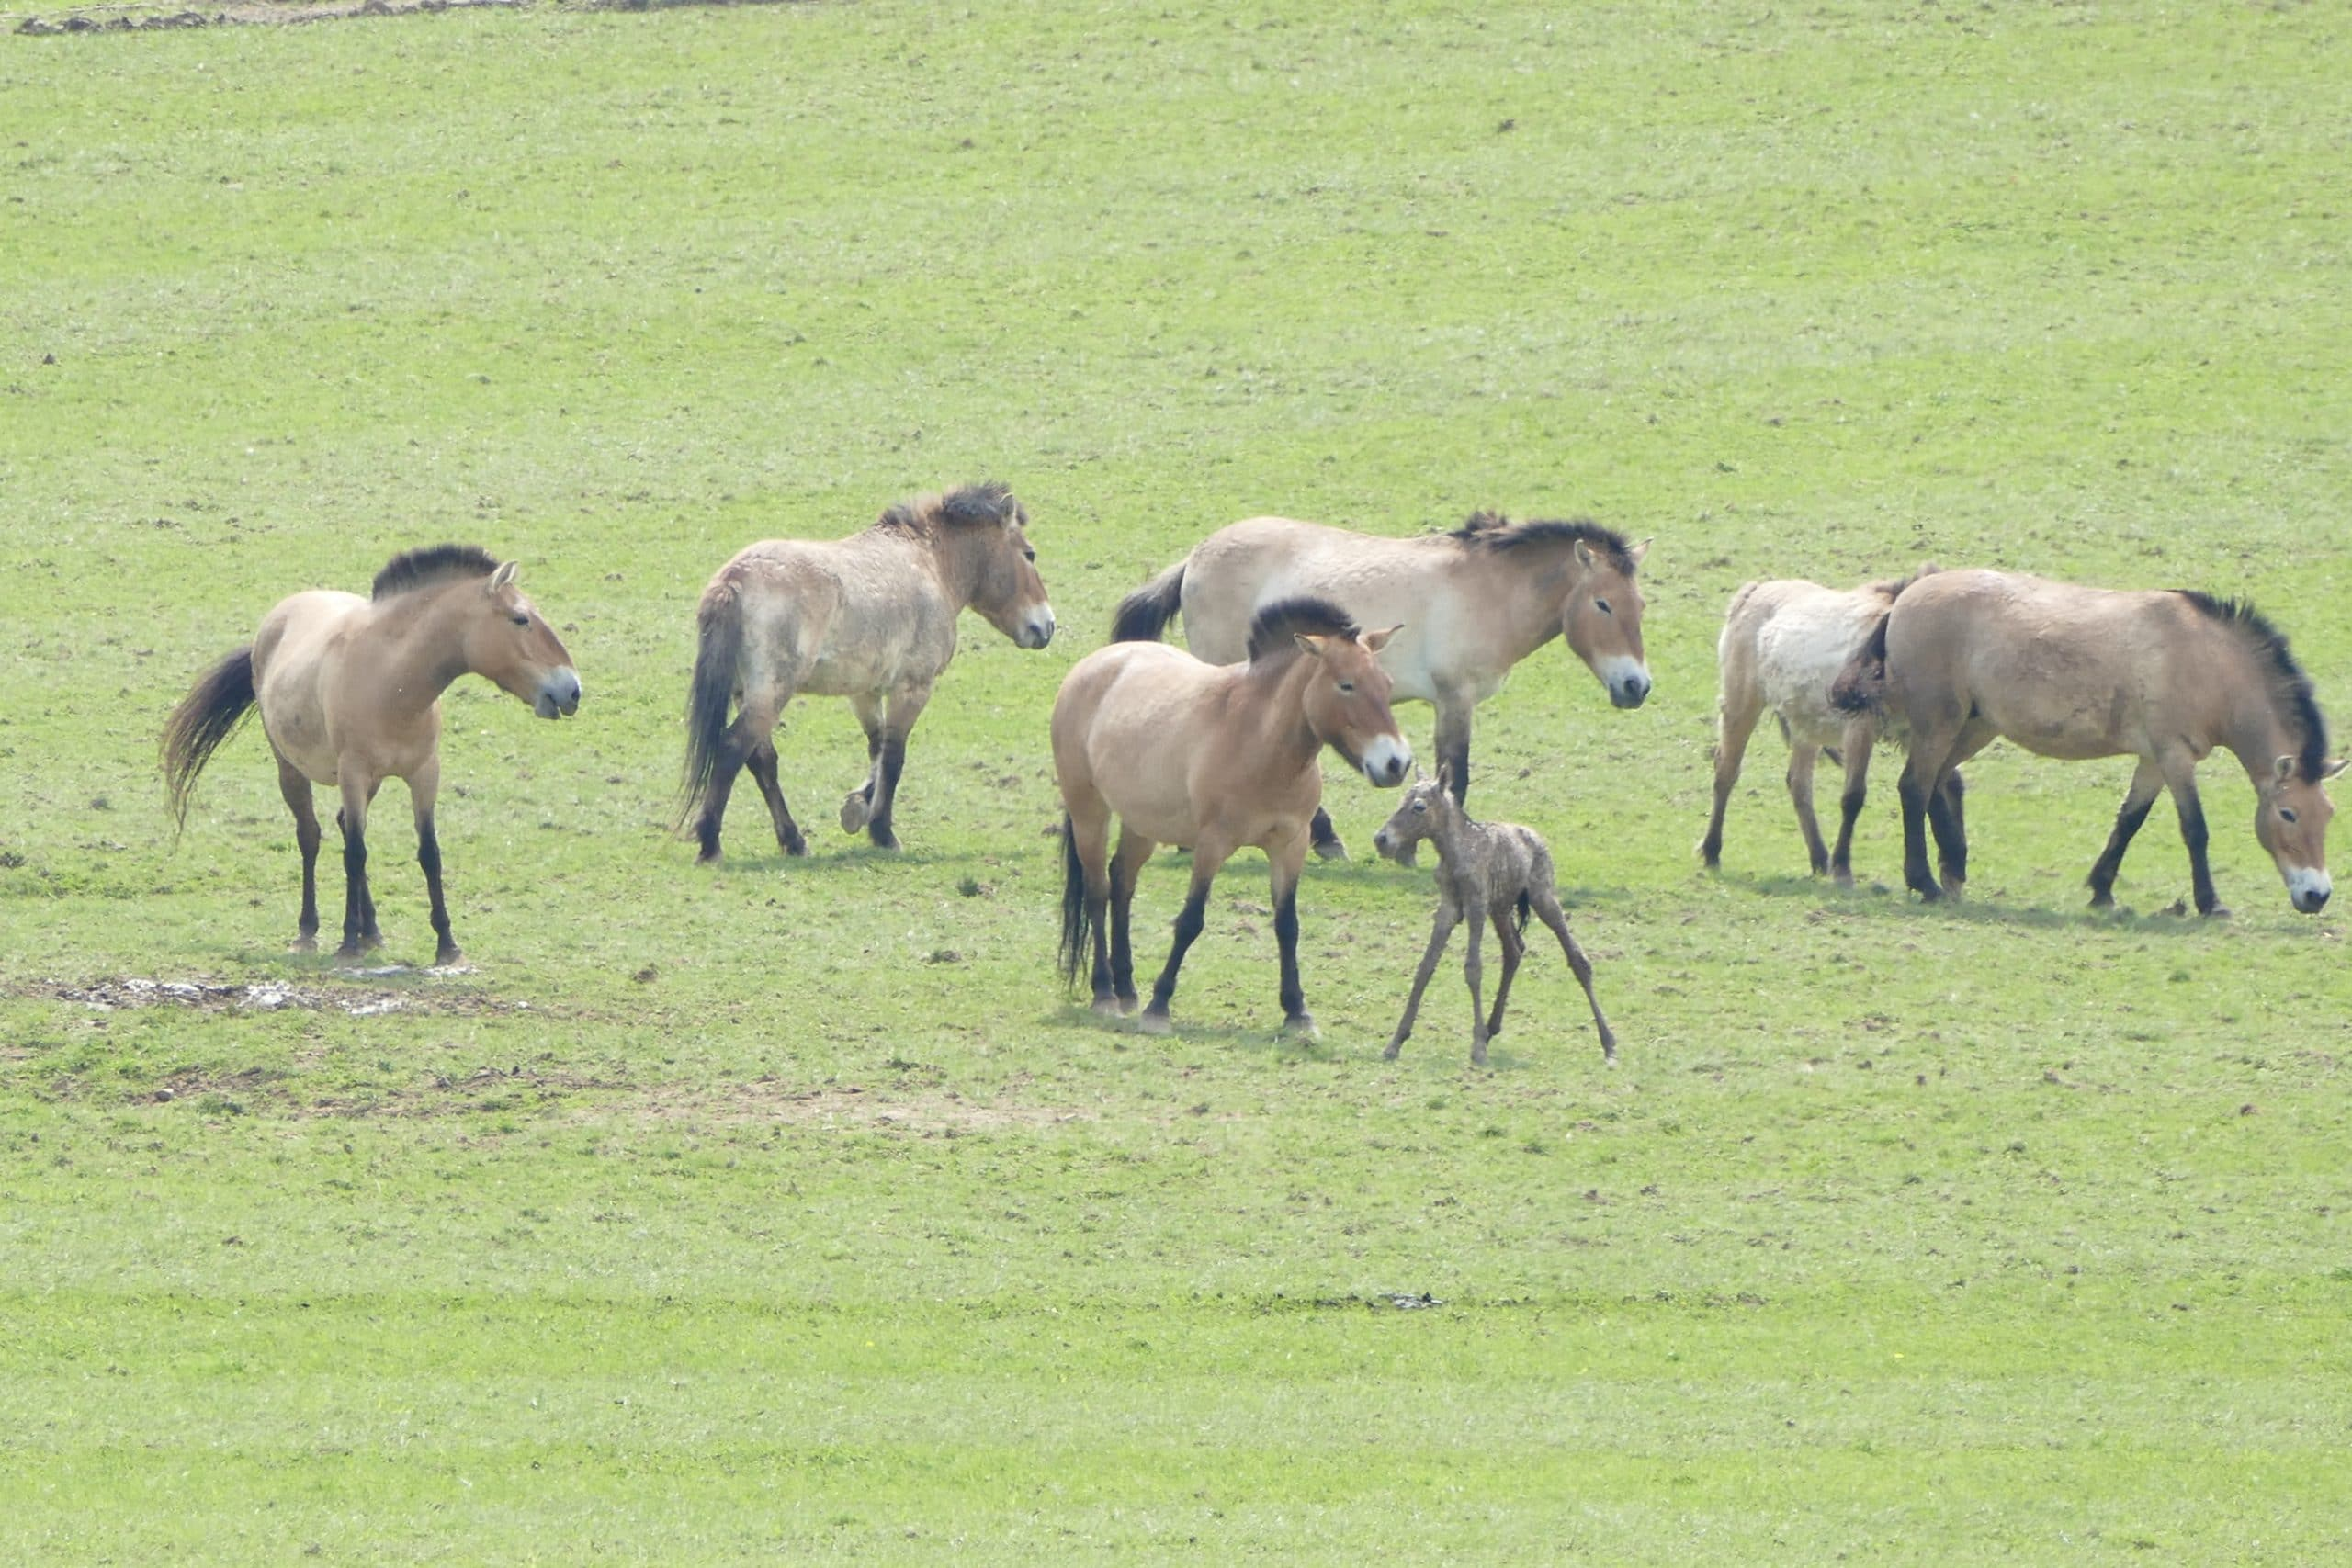 The 'domestic horses' of Botai were in fact the wild Przewalski's horse. (Olaf Janssen/Pixabay)